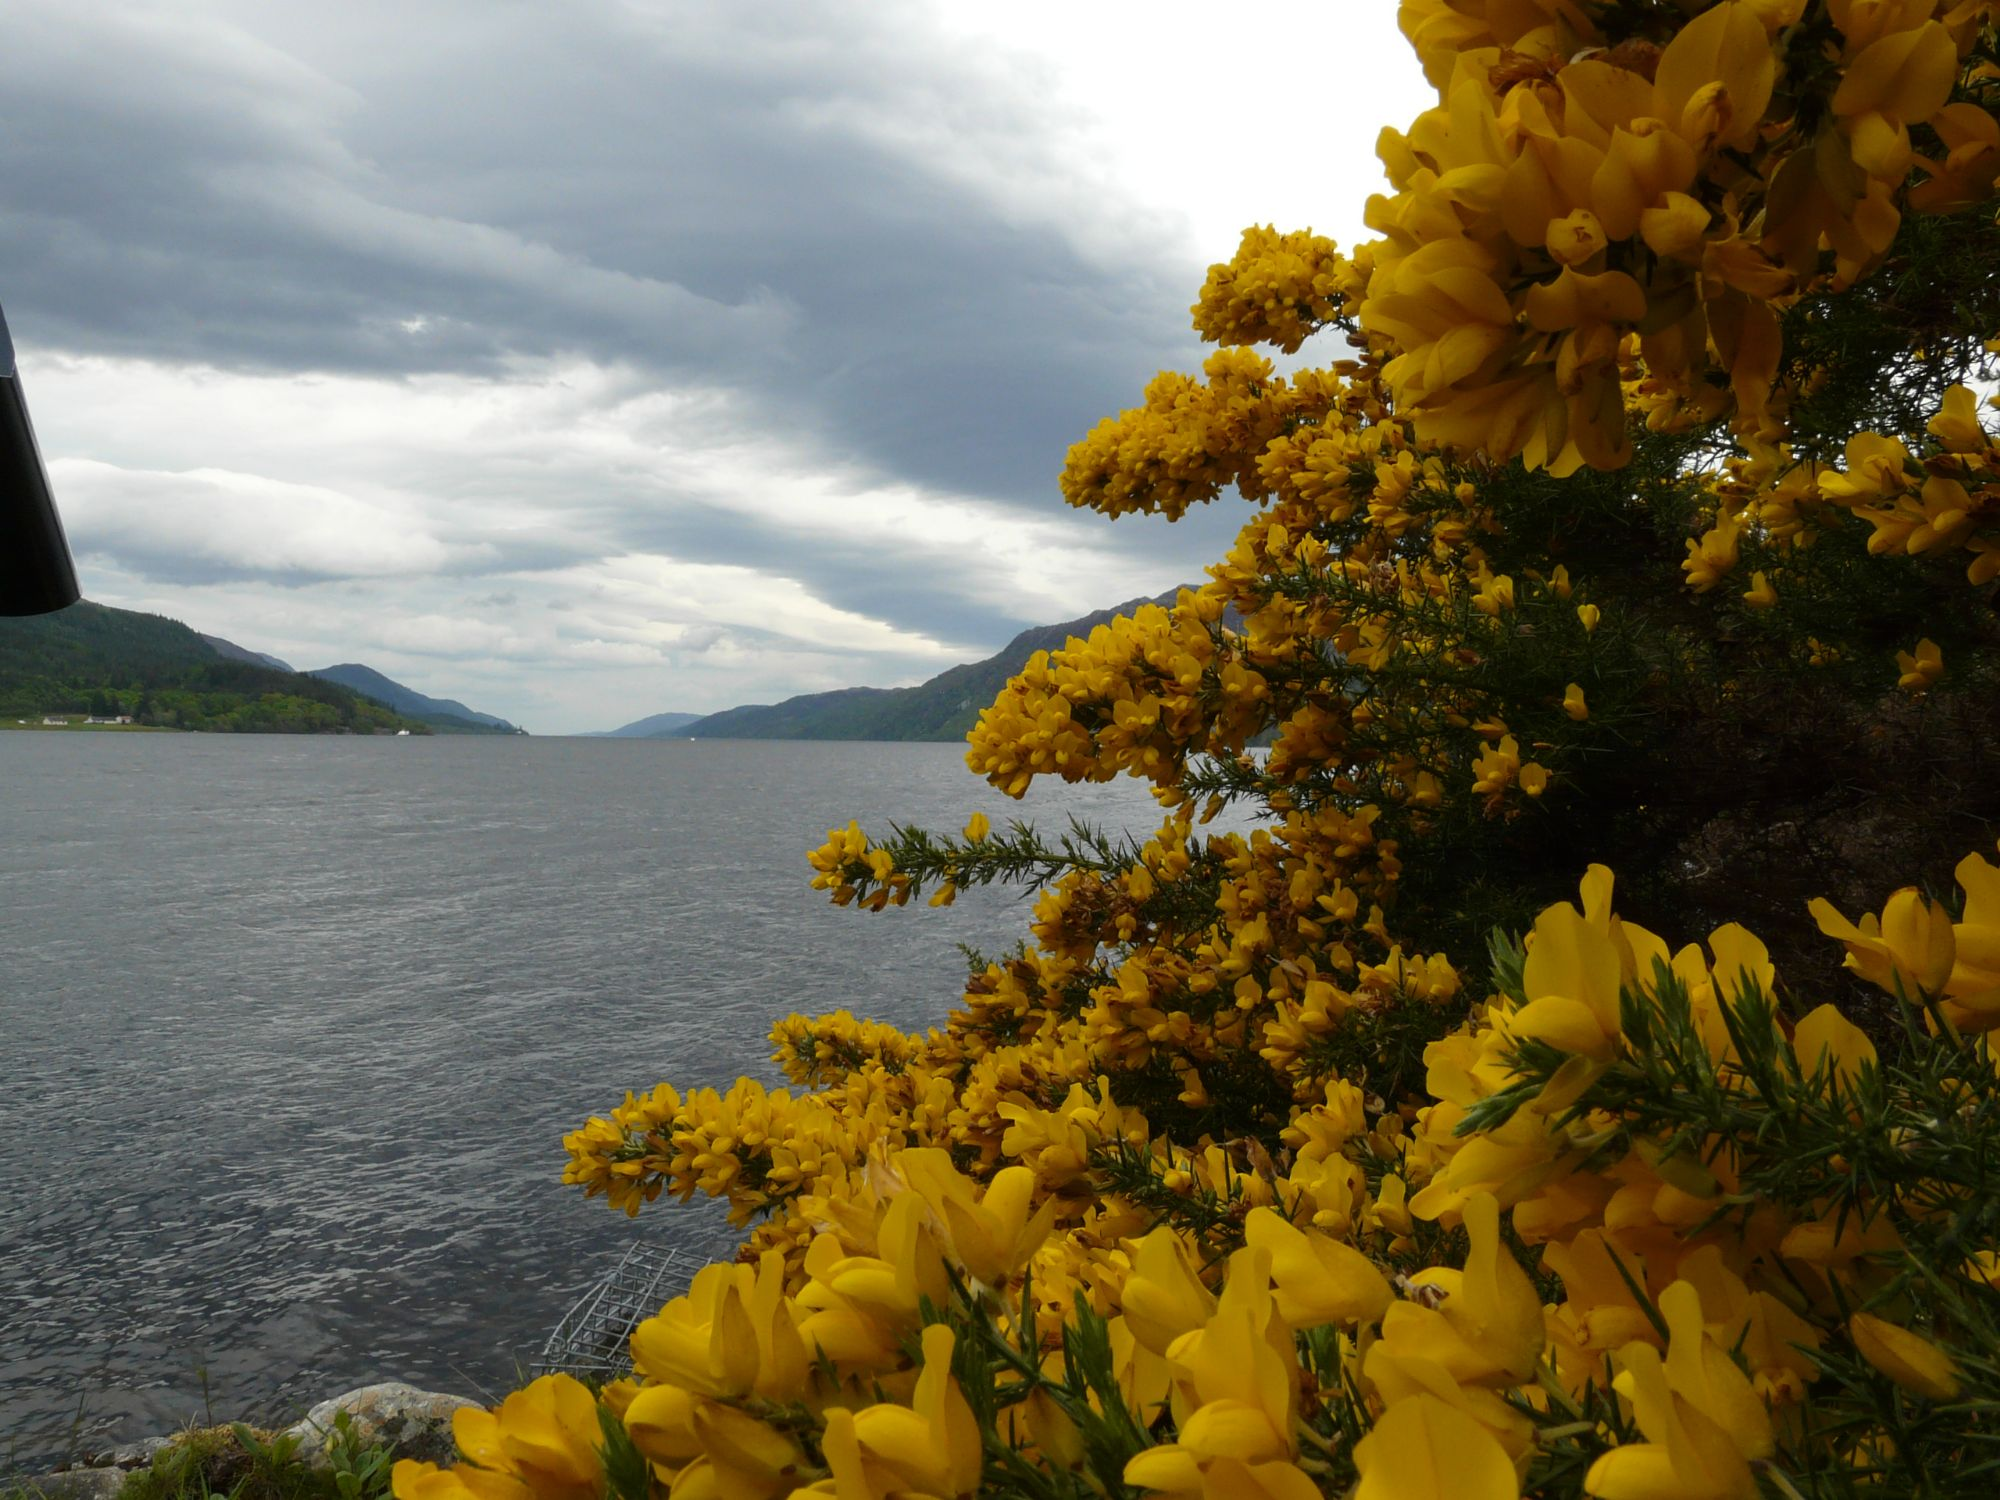 Flowers for Nessie